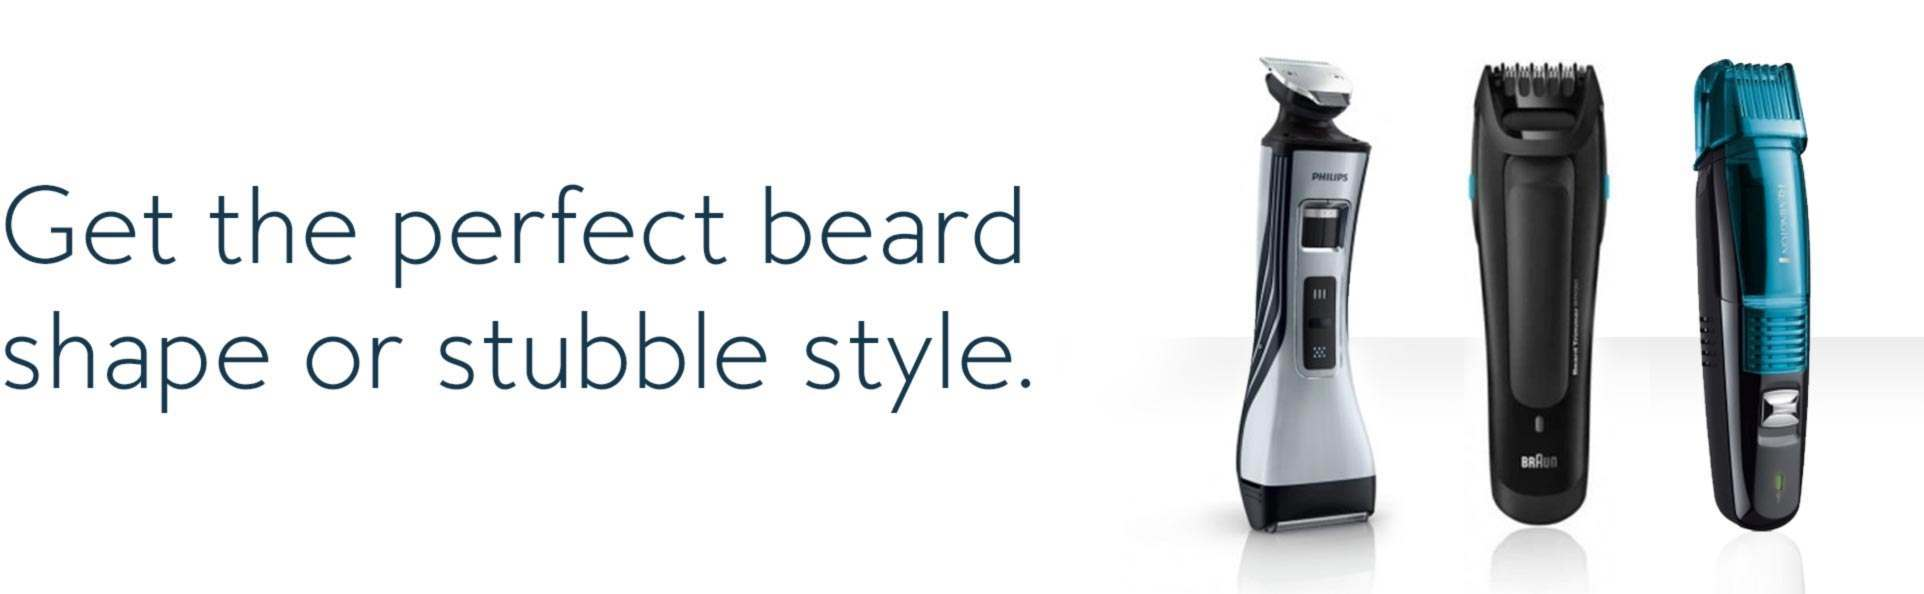 Find the Best Beard Trimmers | Shavers co uk | Free Delivery